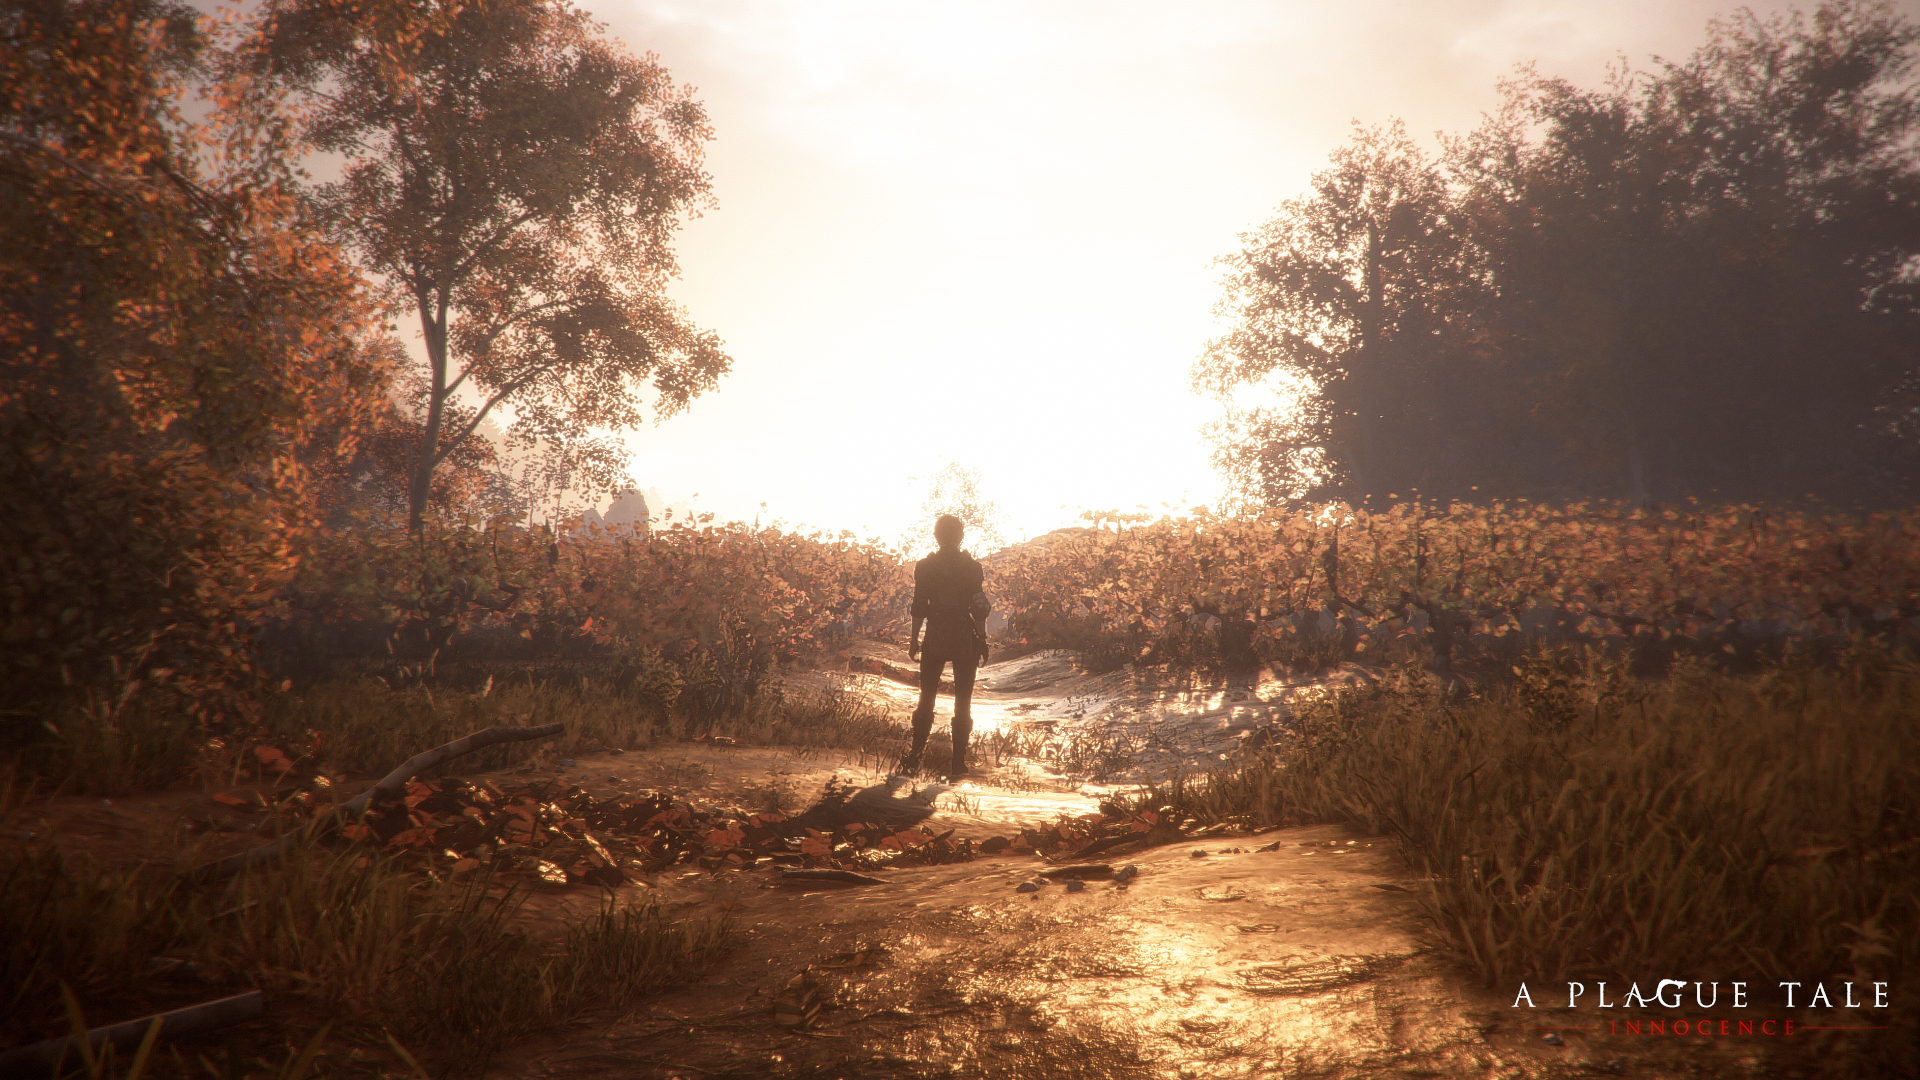 A_Plague_Tale-Innocence-Screenshot_17_logo.jpg